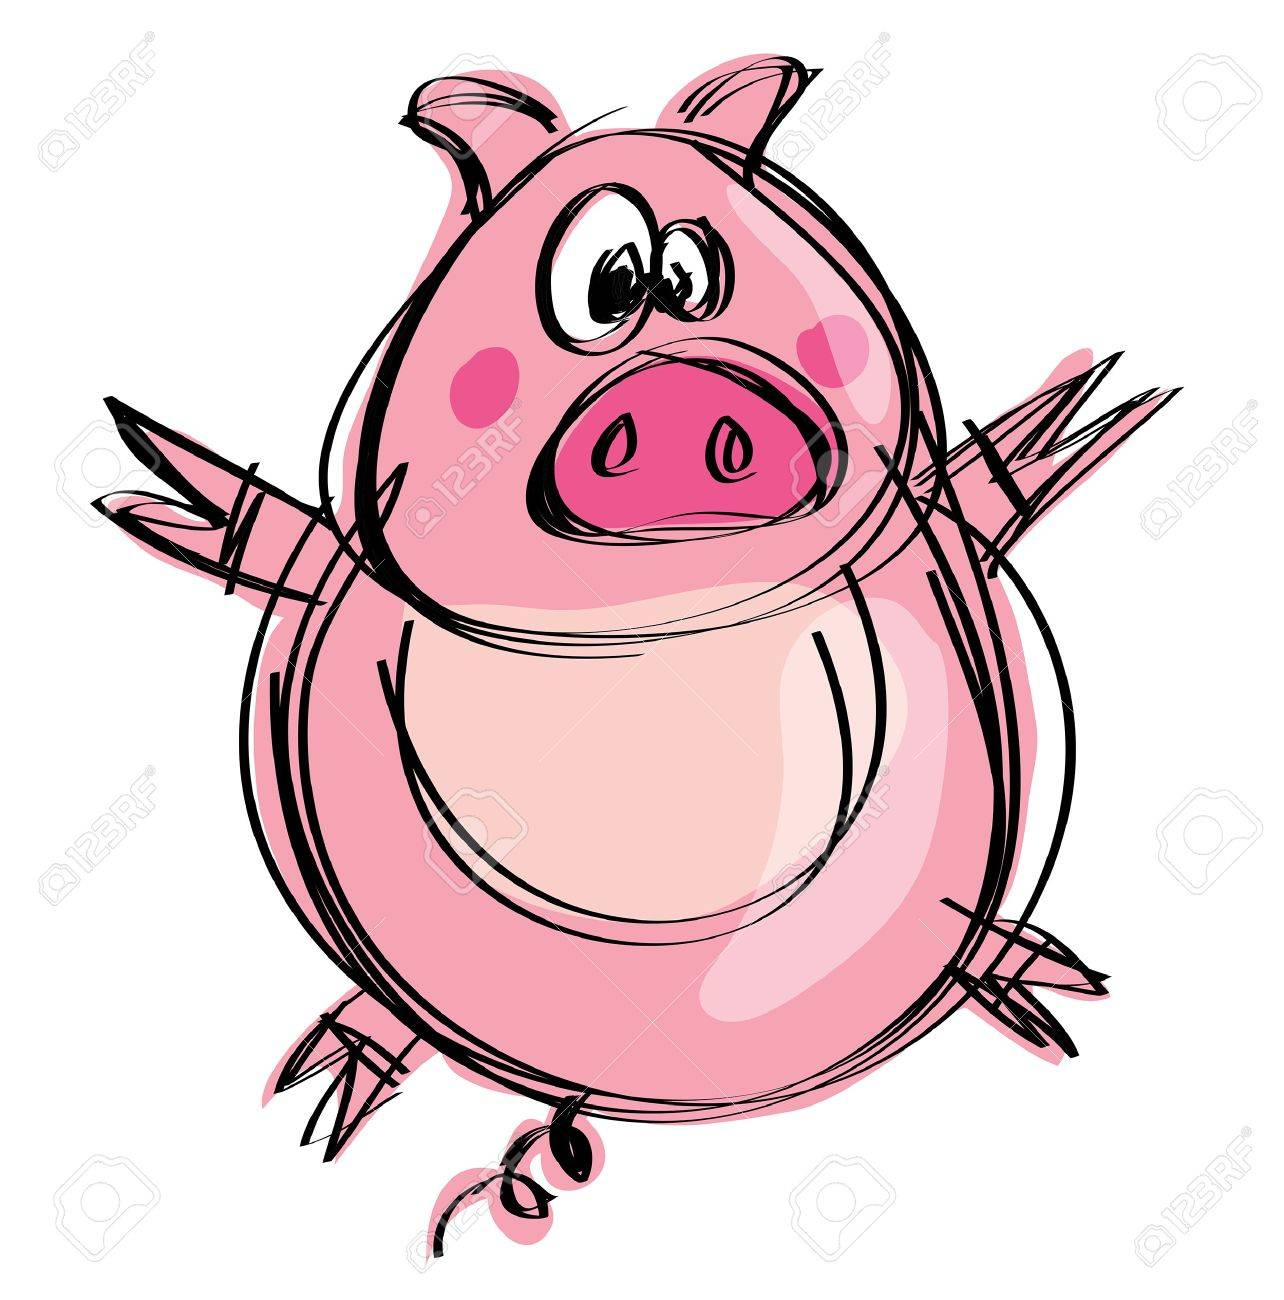 Cartoon Funny Naif Baby Pig In A Naif Childish Drawing Style Royalty Free Cliparts Vectors And Stock Illustration Image 20561041